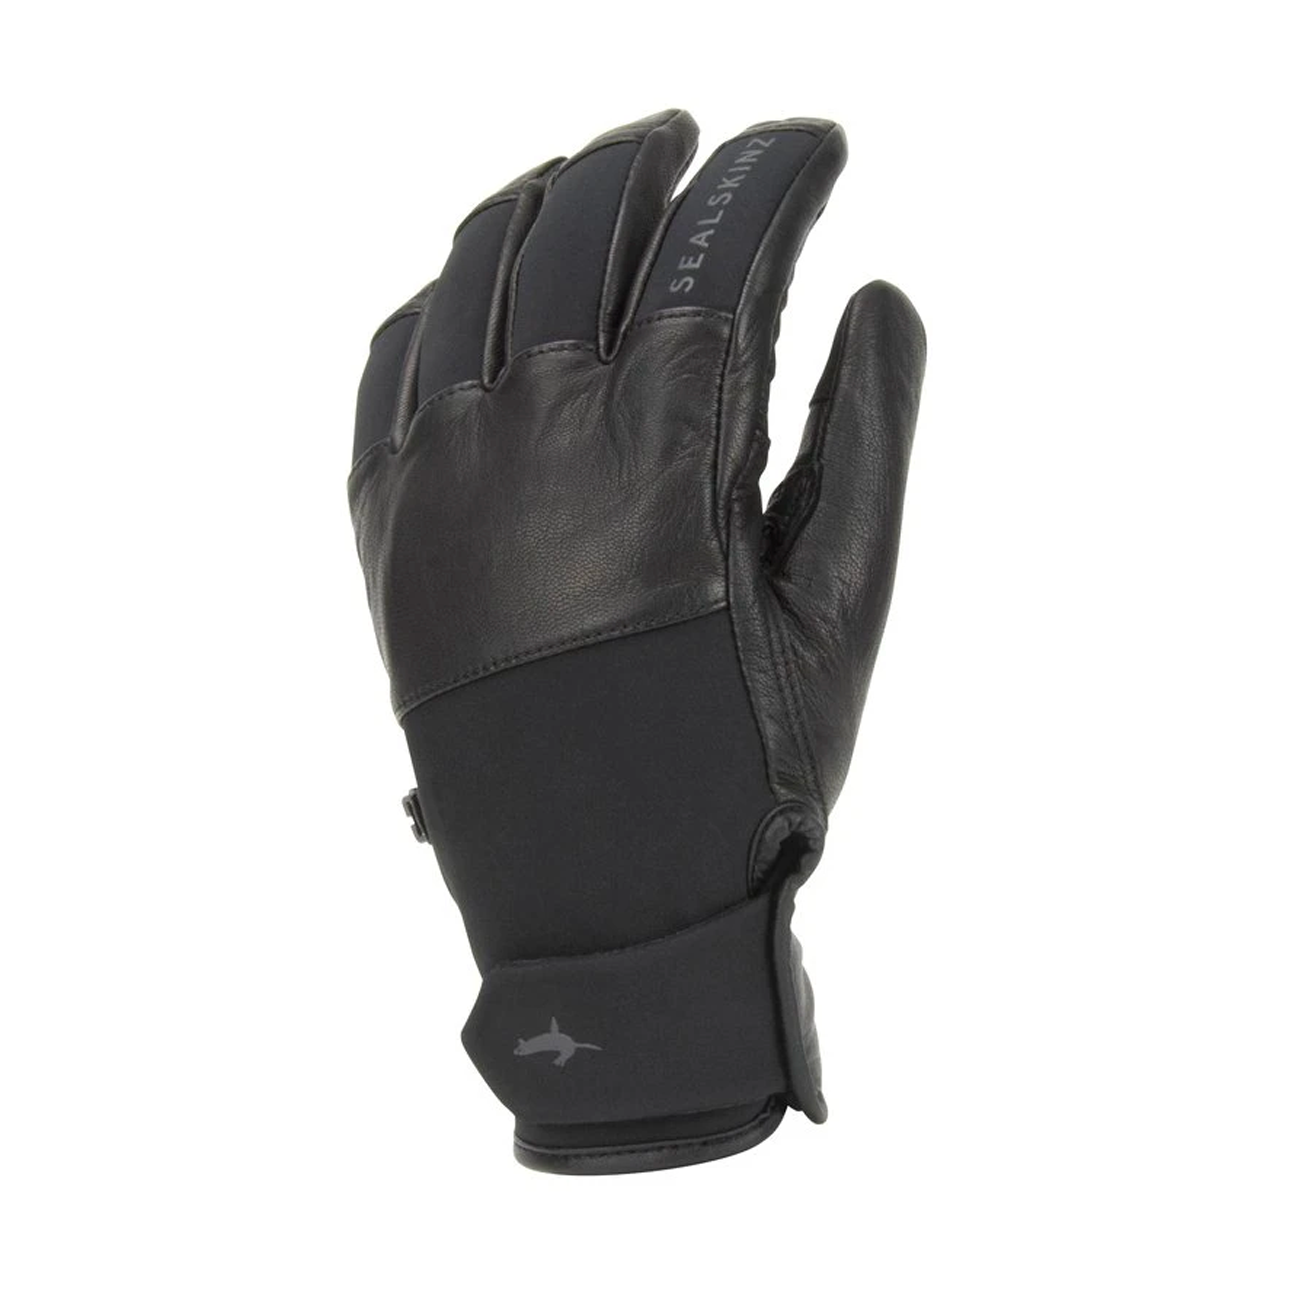 Waterproof-Cold-Weather-Glove-with-Fusion-Control™